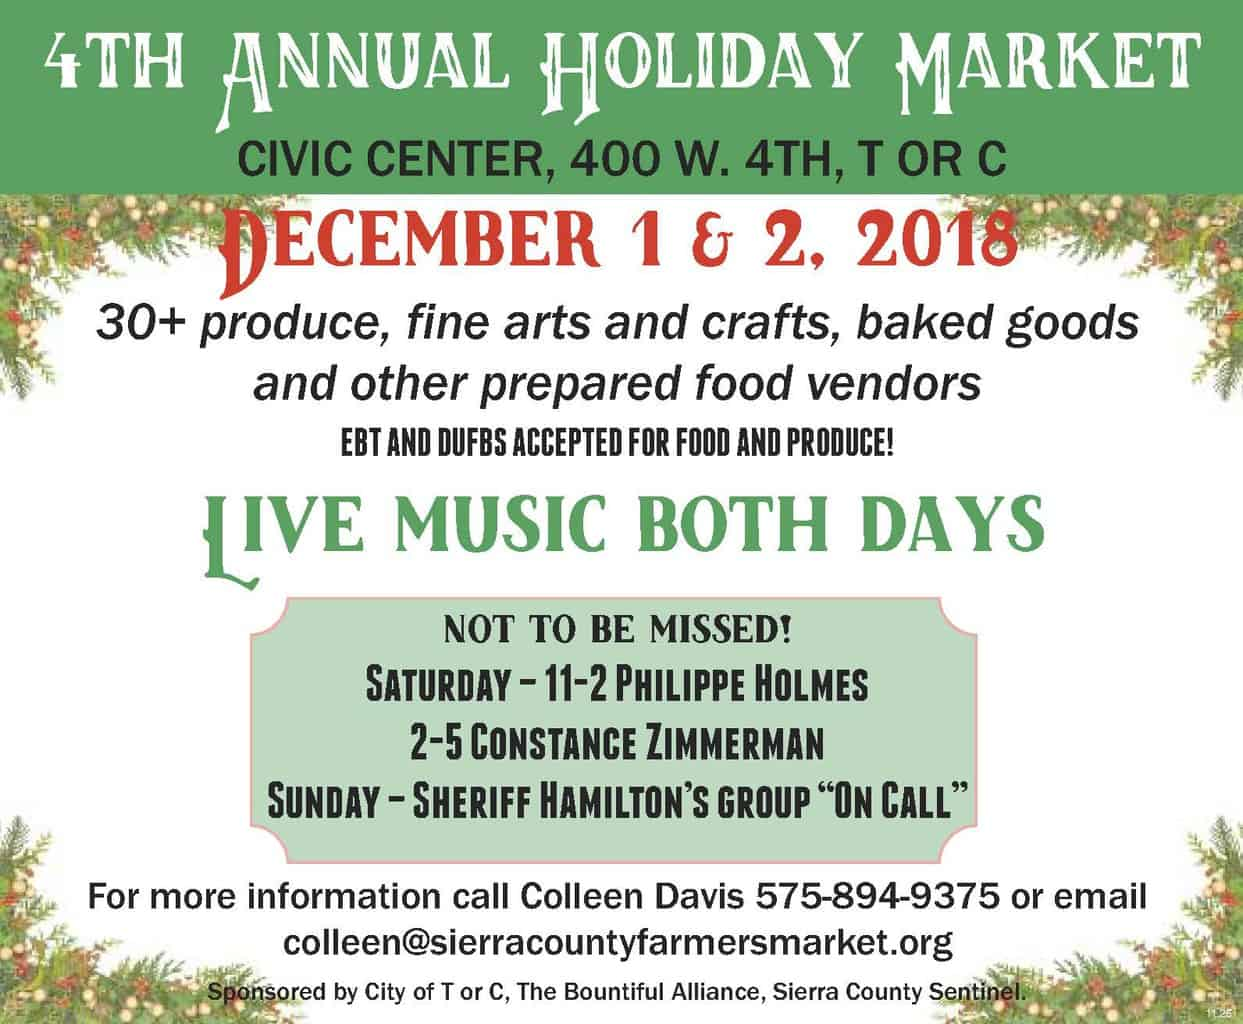 4th Annual Holiday Market